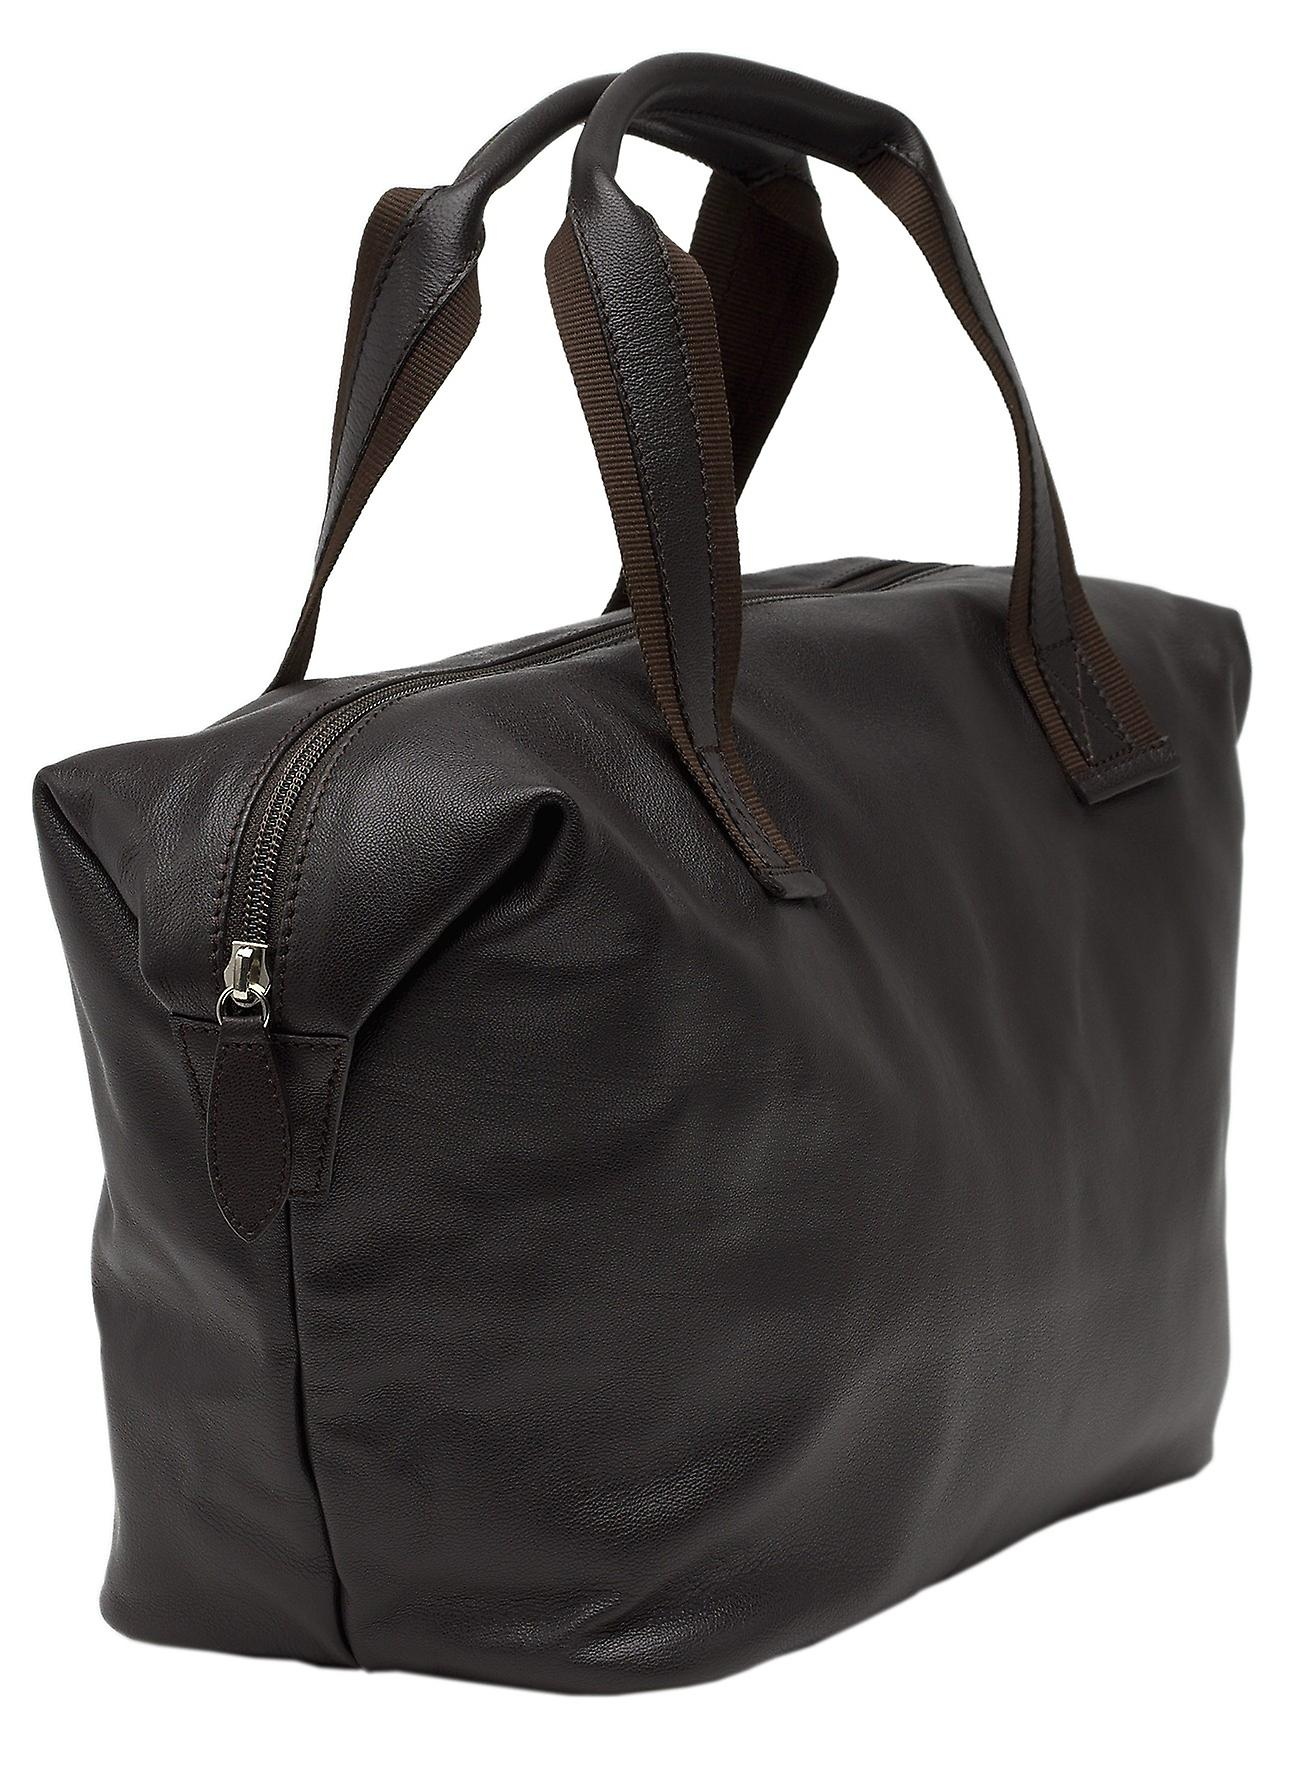 Burgmeister ladies handbag T209-515A leather dark brown